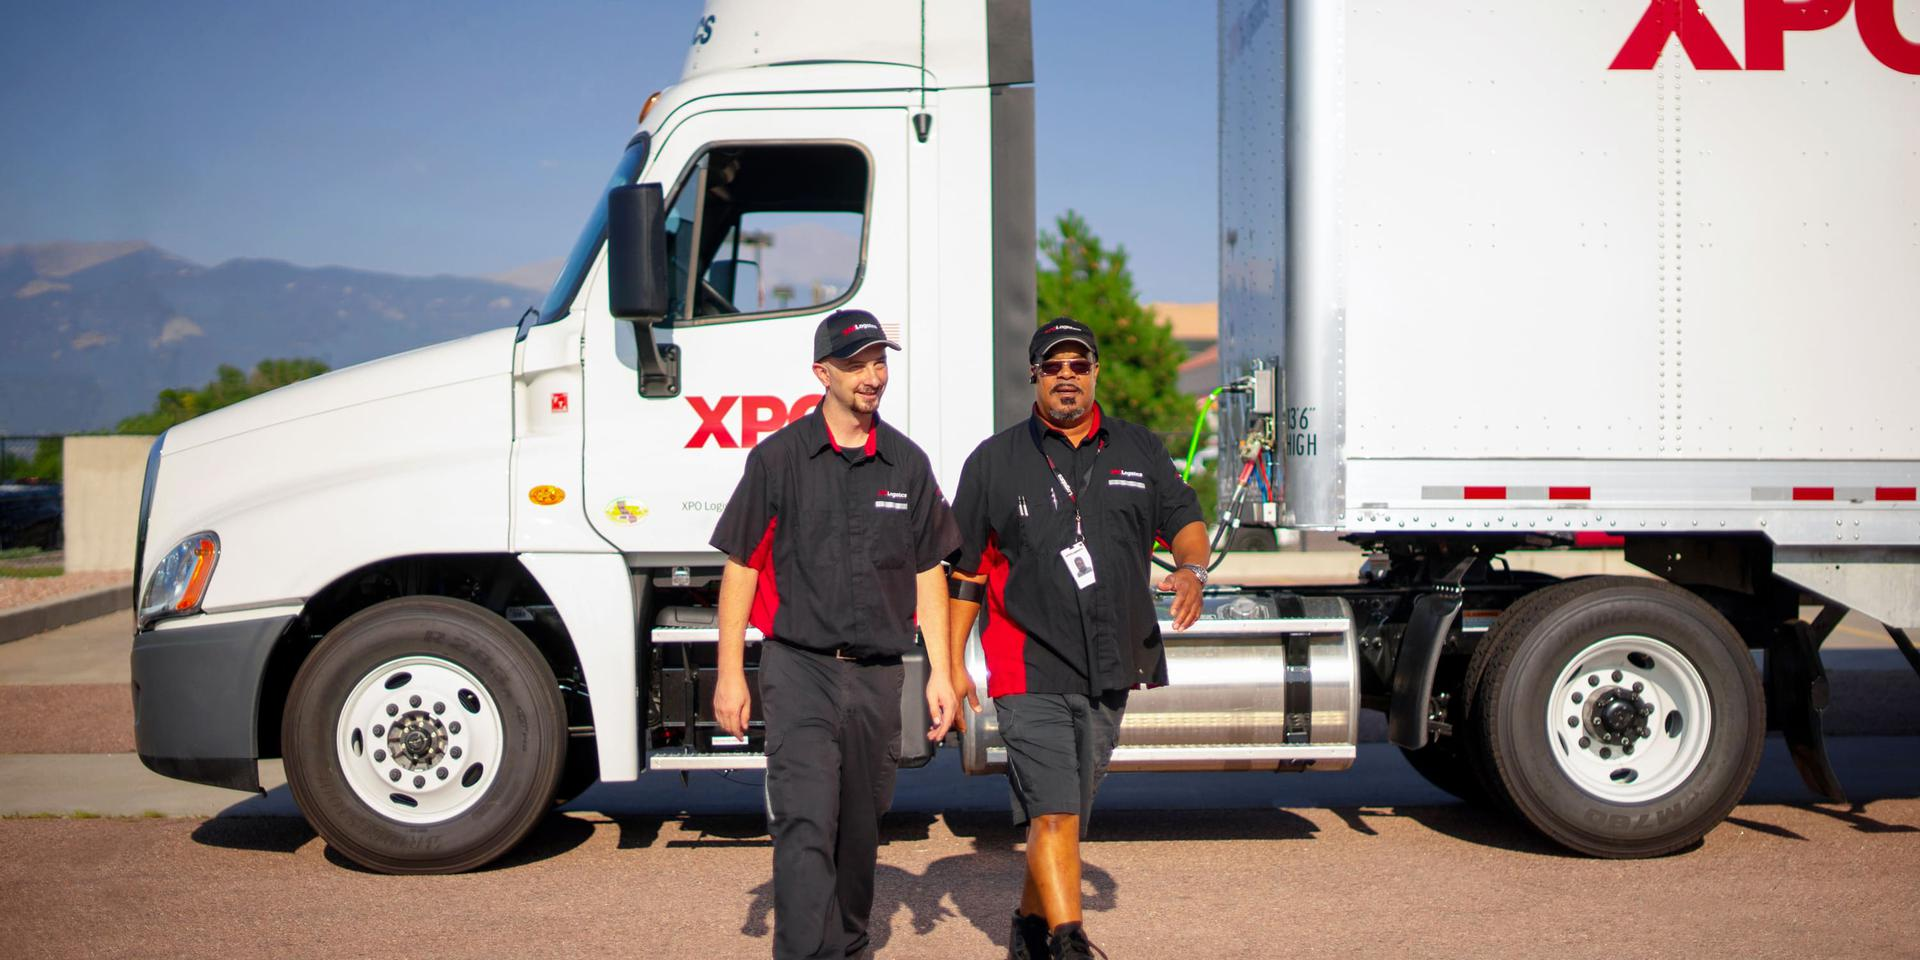 XPO Drivers walking in front of truck, on a bright sunny day with mountains in the background